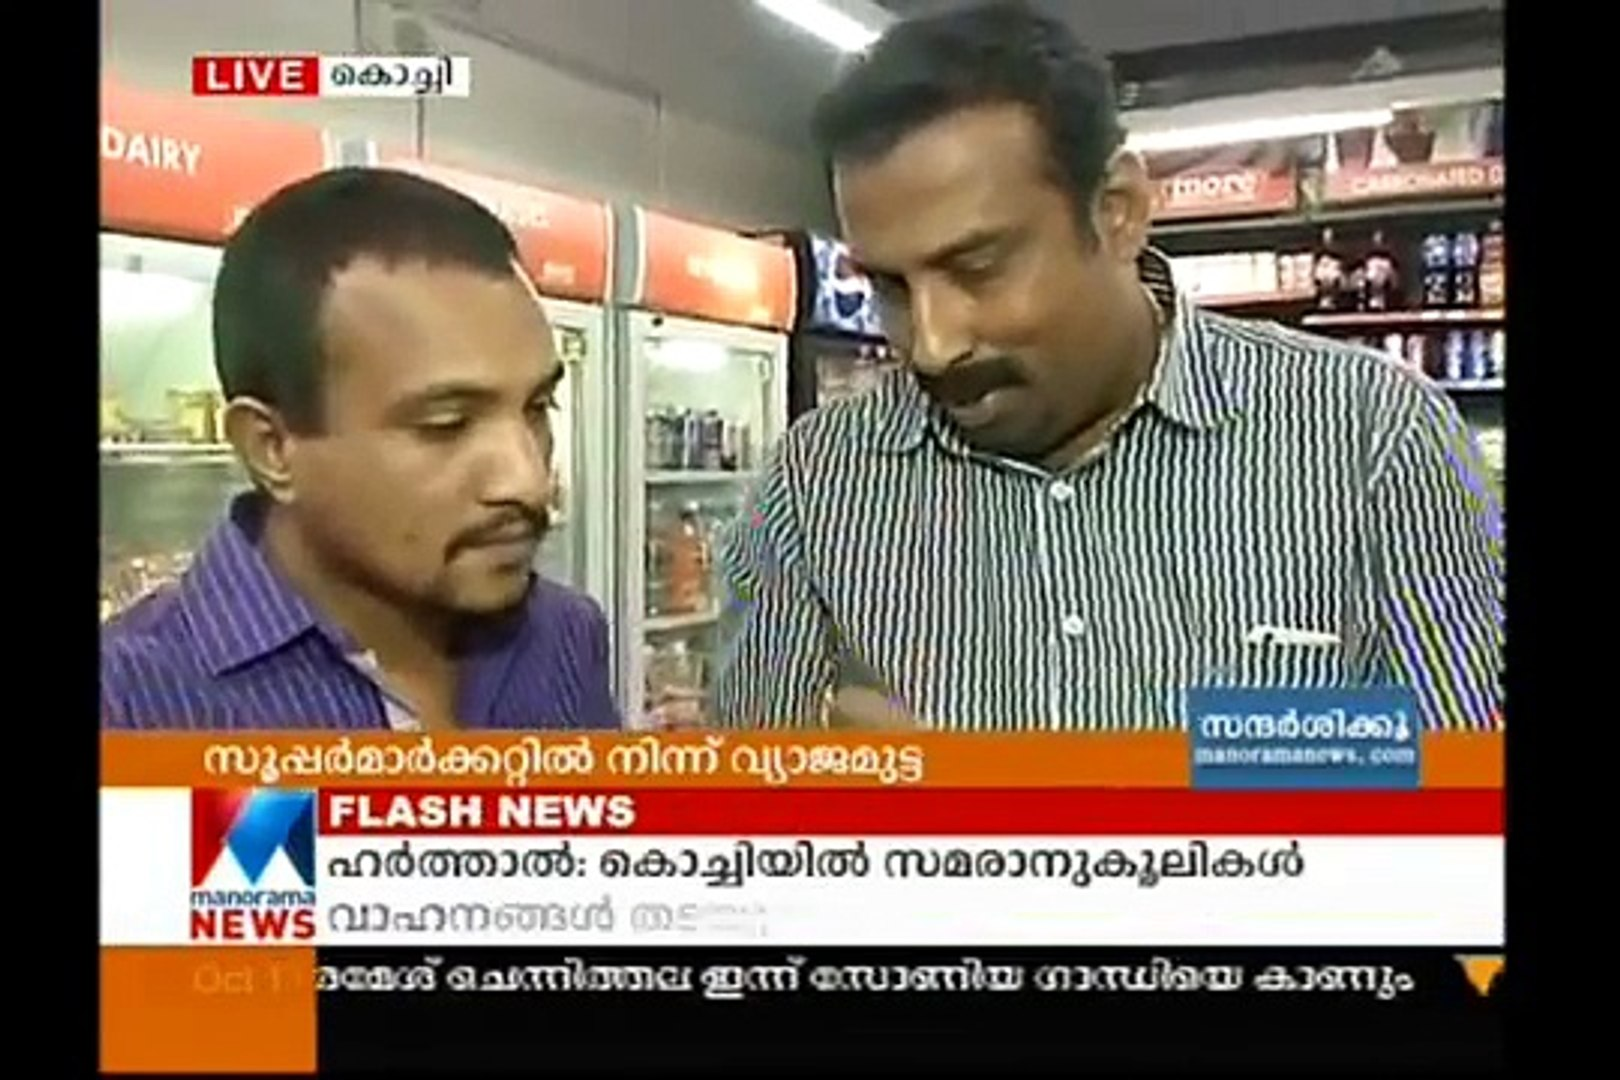 Natives seize egg from supermarket alleges fake eggs | Manorama News